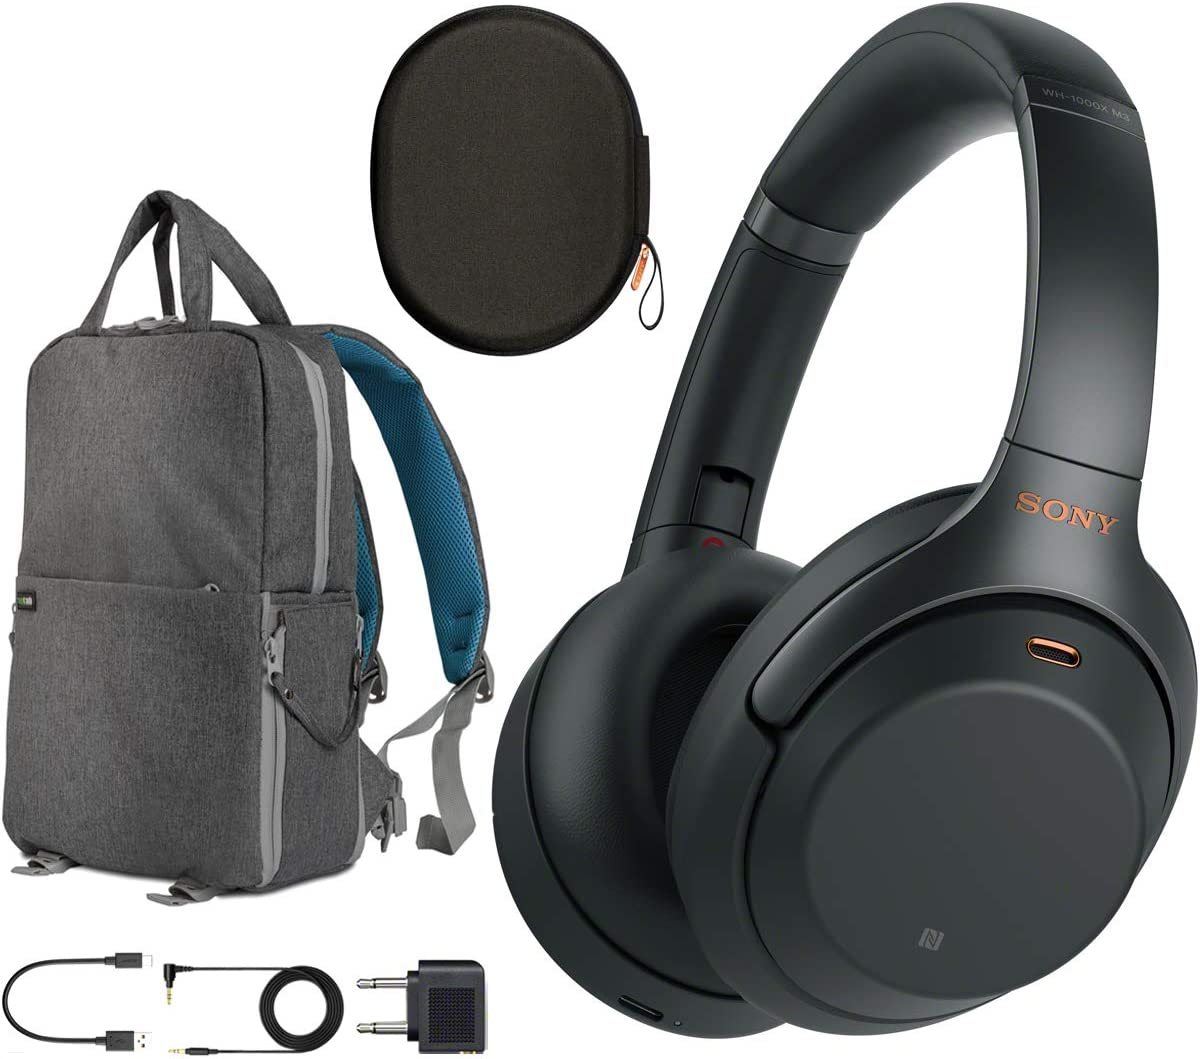 Sony WH1000XM3 Premium Noise Cancelling Wireless Bluetooth Headphones with Built in Microphone WH-1000XM3 B Black Commuter s Bundle with Deco Gear Travel Backpack with Gadget Compartment USB Port